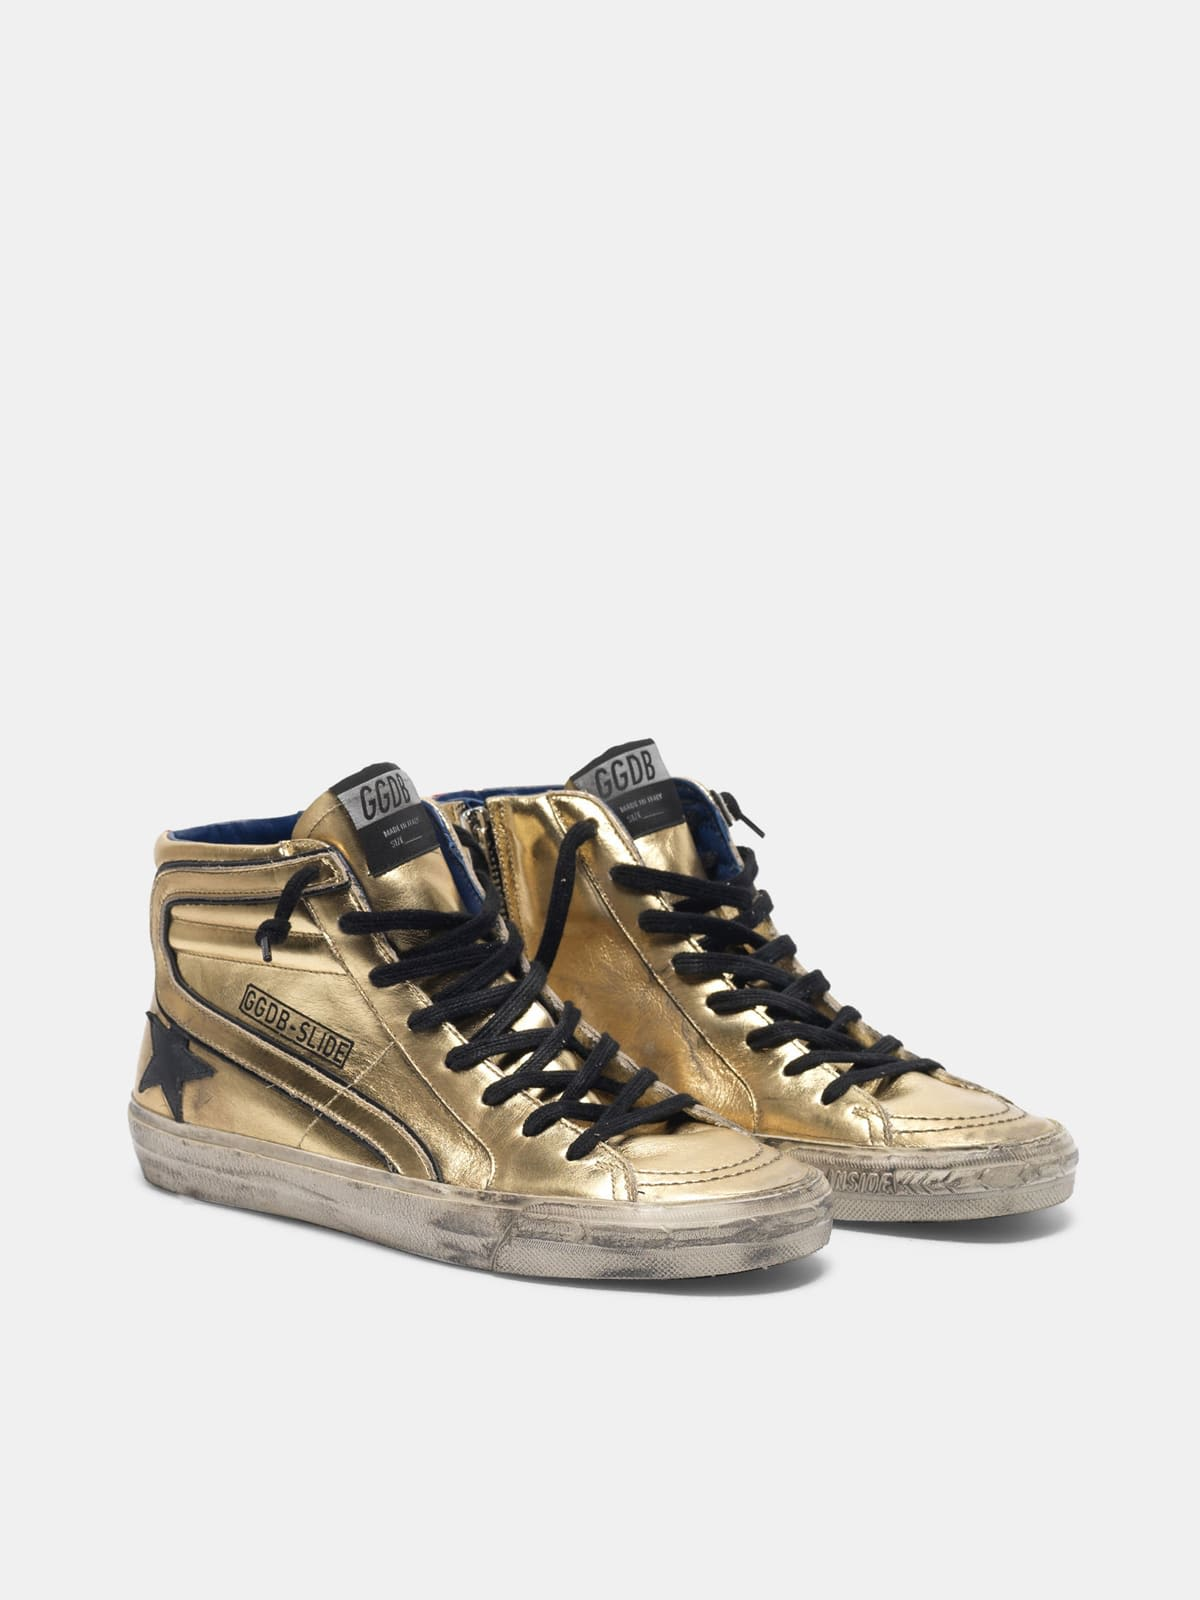 Slide sneakers in gold laminated leather